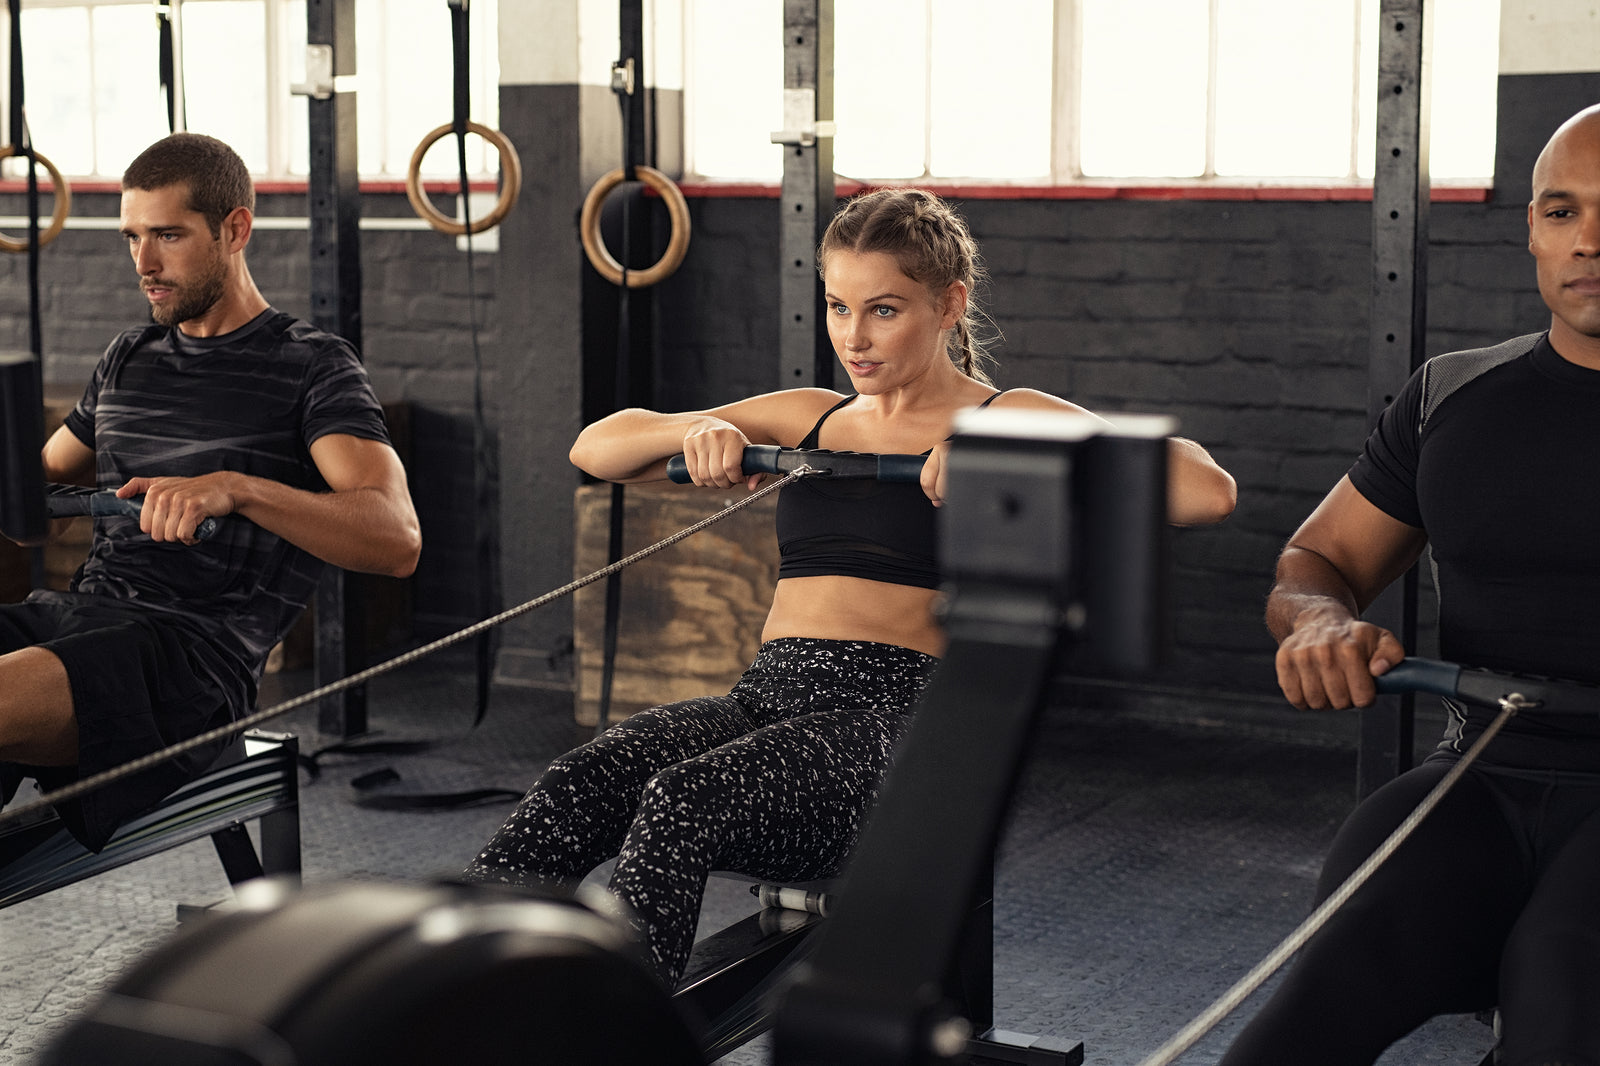 Men and women workout on the rowing machine to get results